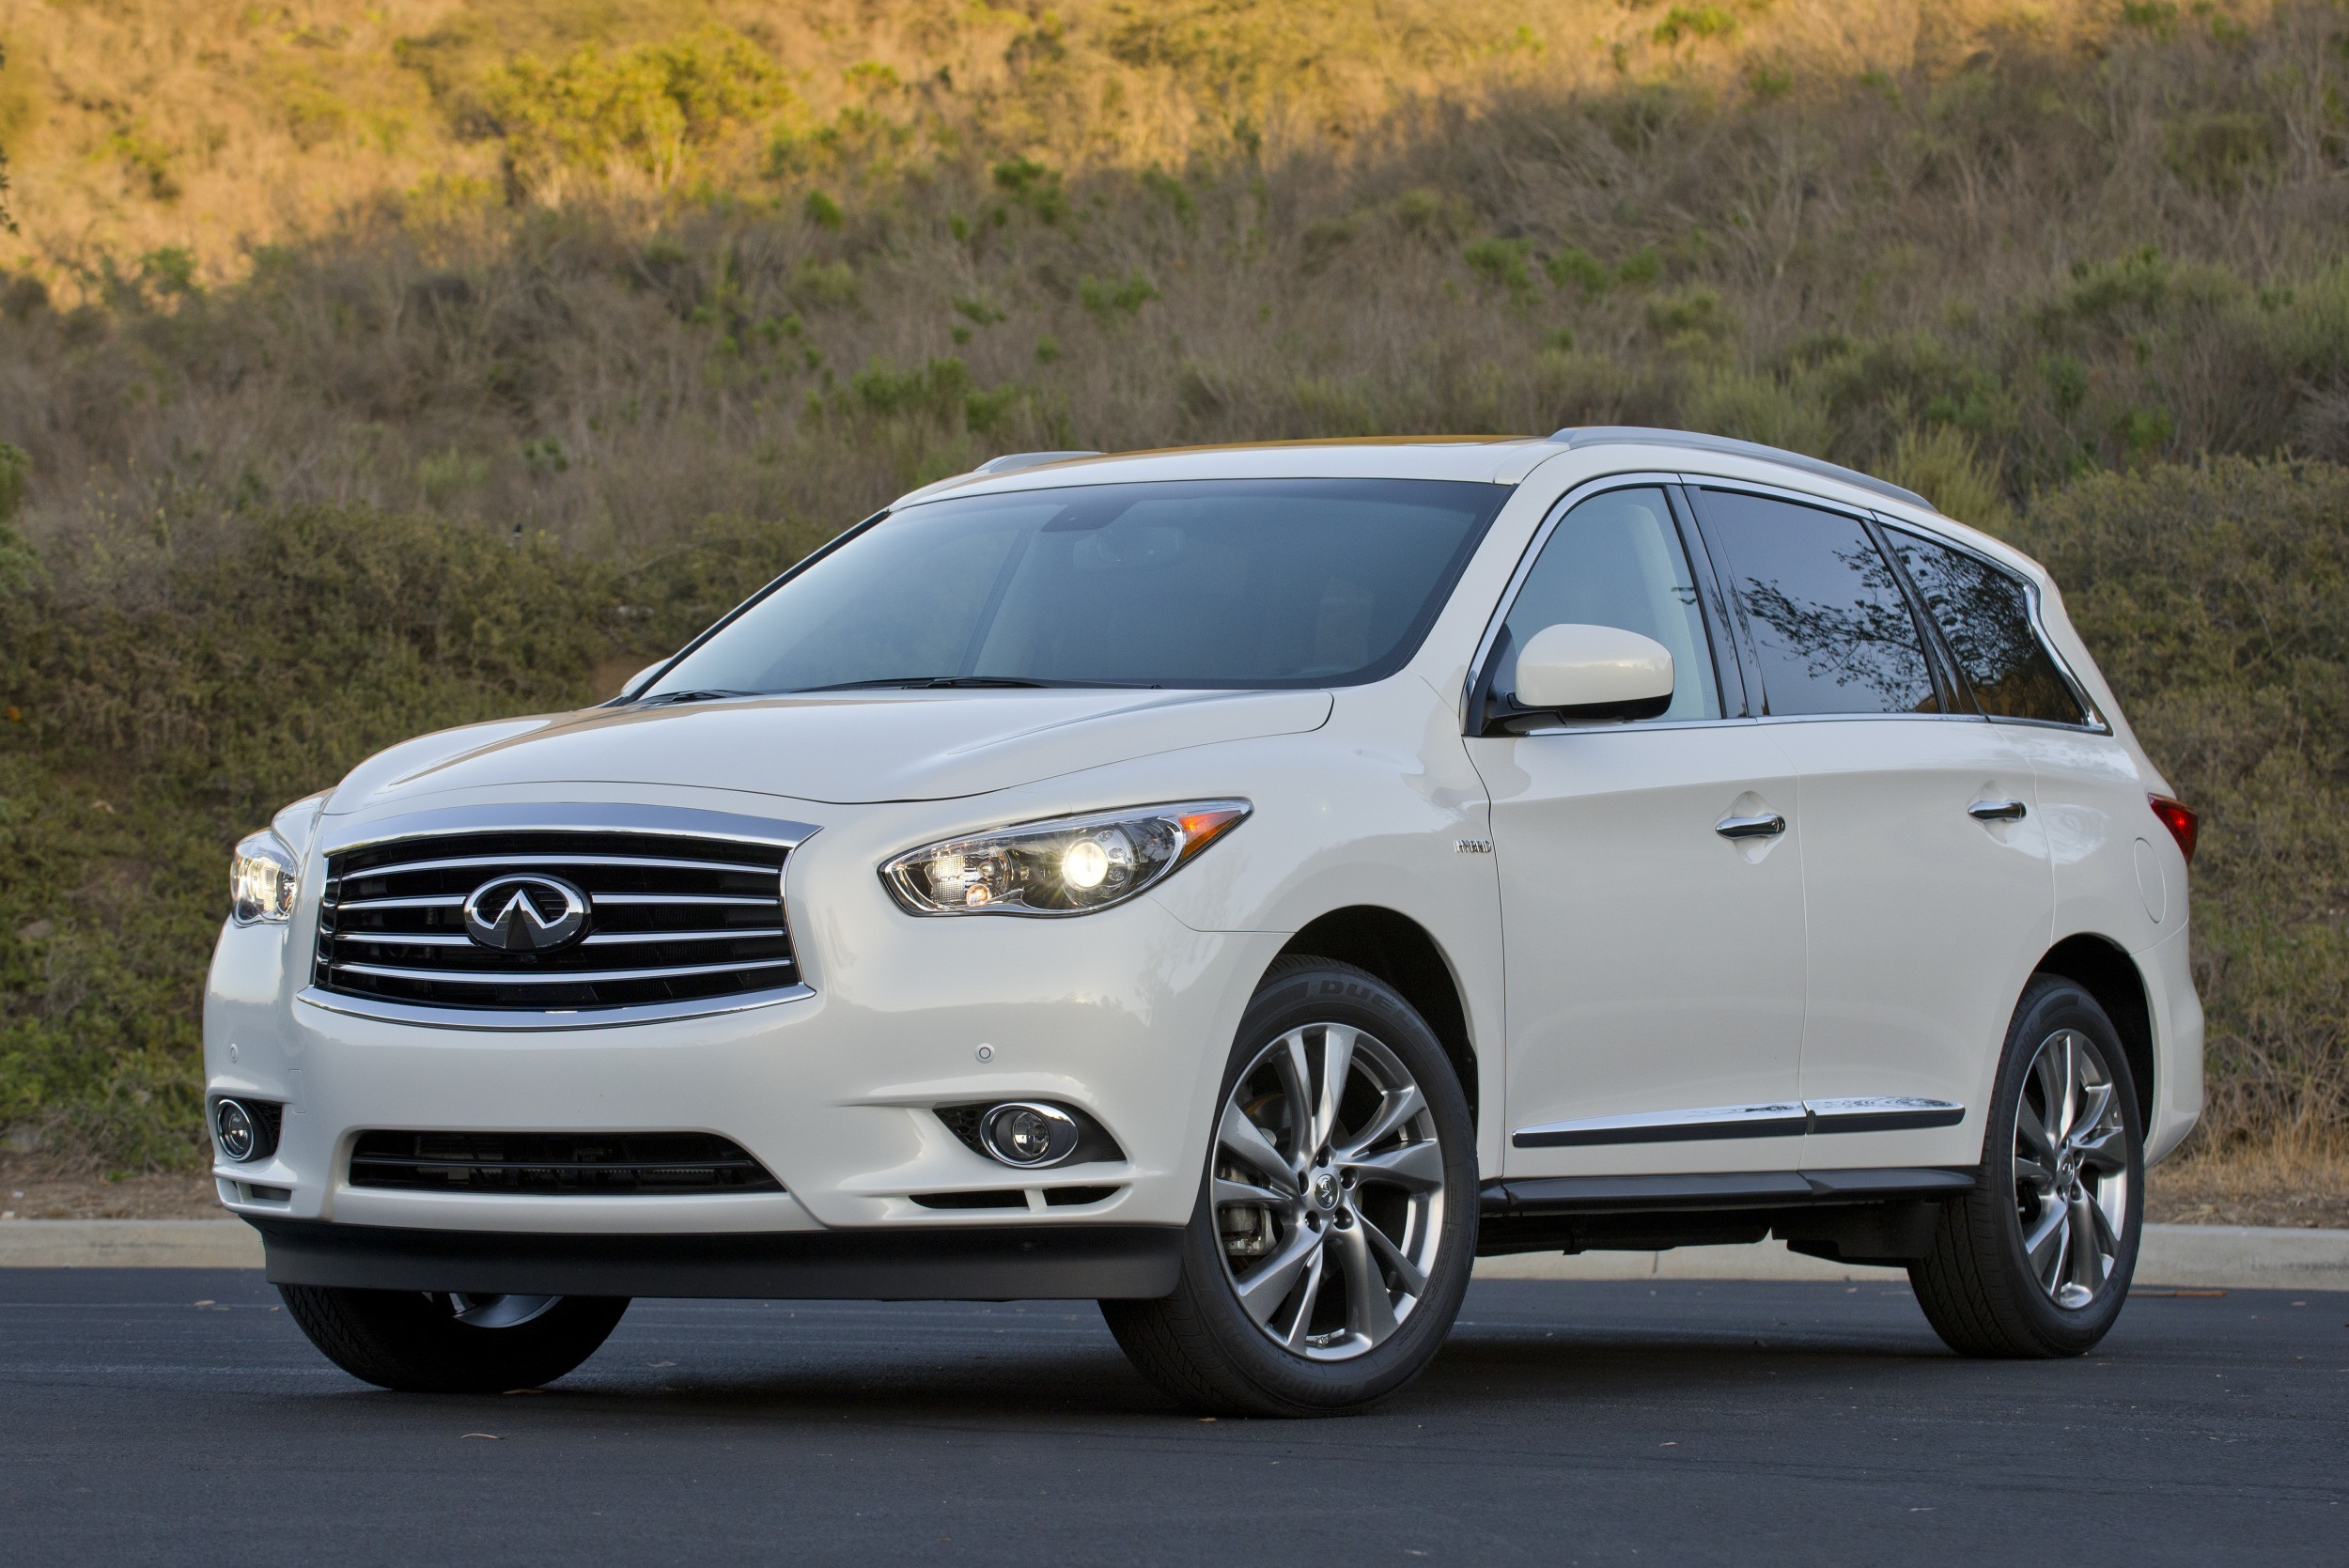 2014 infiniti qx60 hybrid awd quick spin photo gallery autoblog. Black Bedroom Furniture Sets. Home Design Ideas